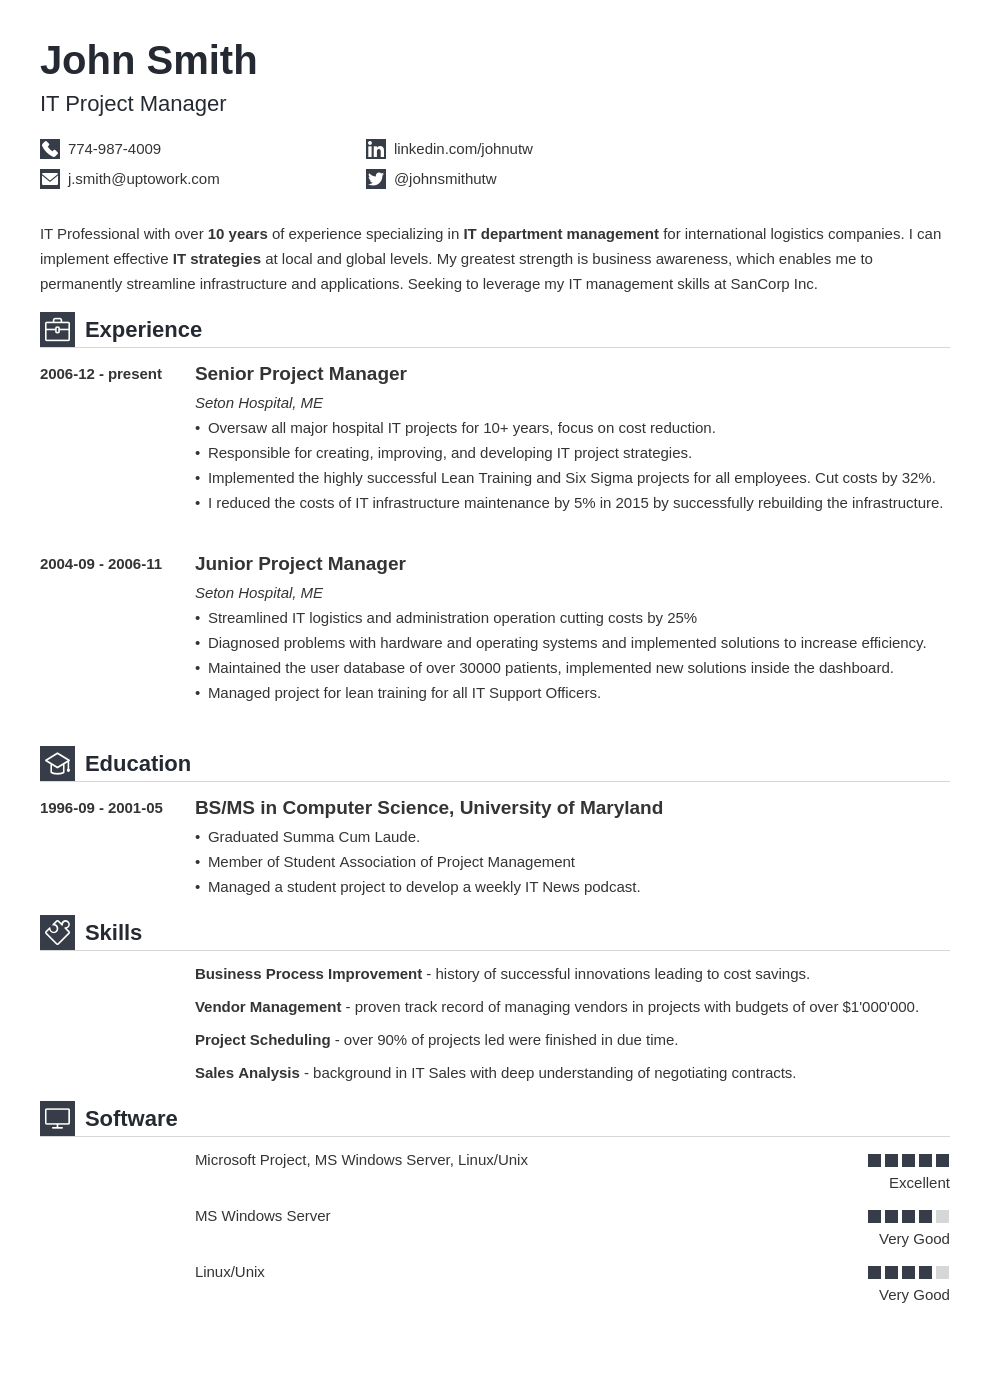 Awesome Professional Resume Template Iconic Ideas Reume Templates